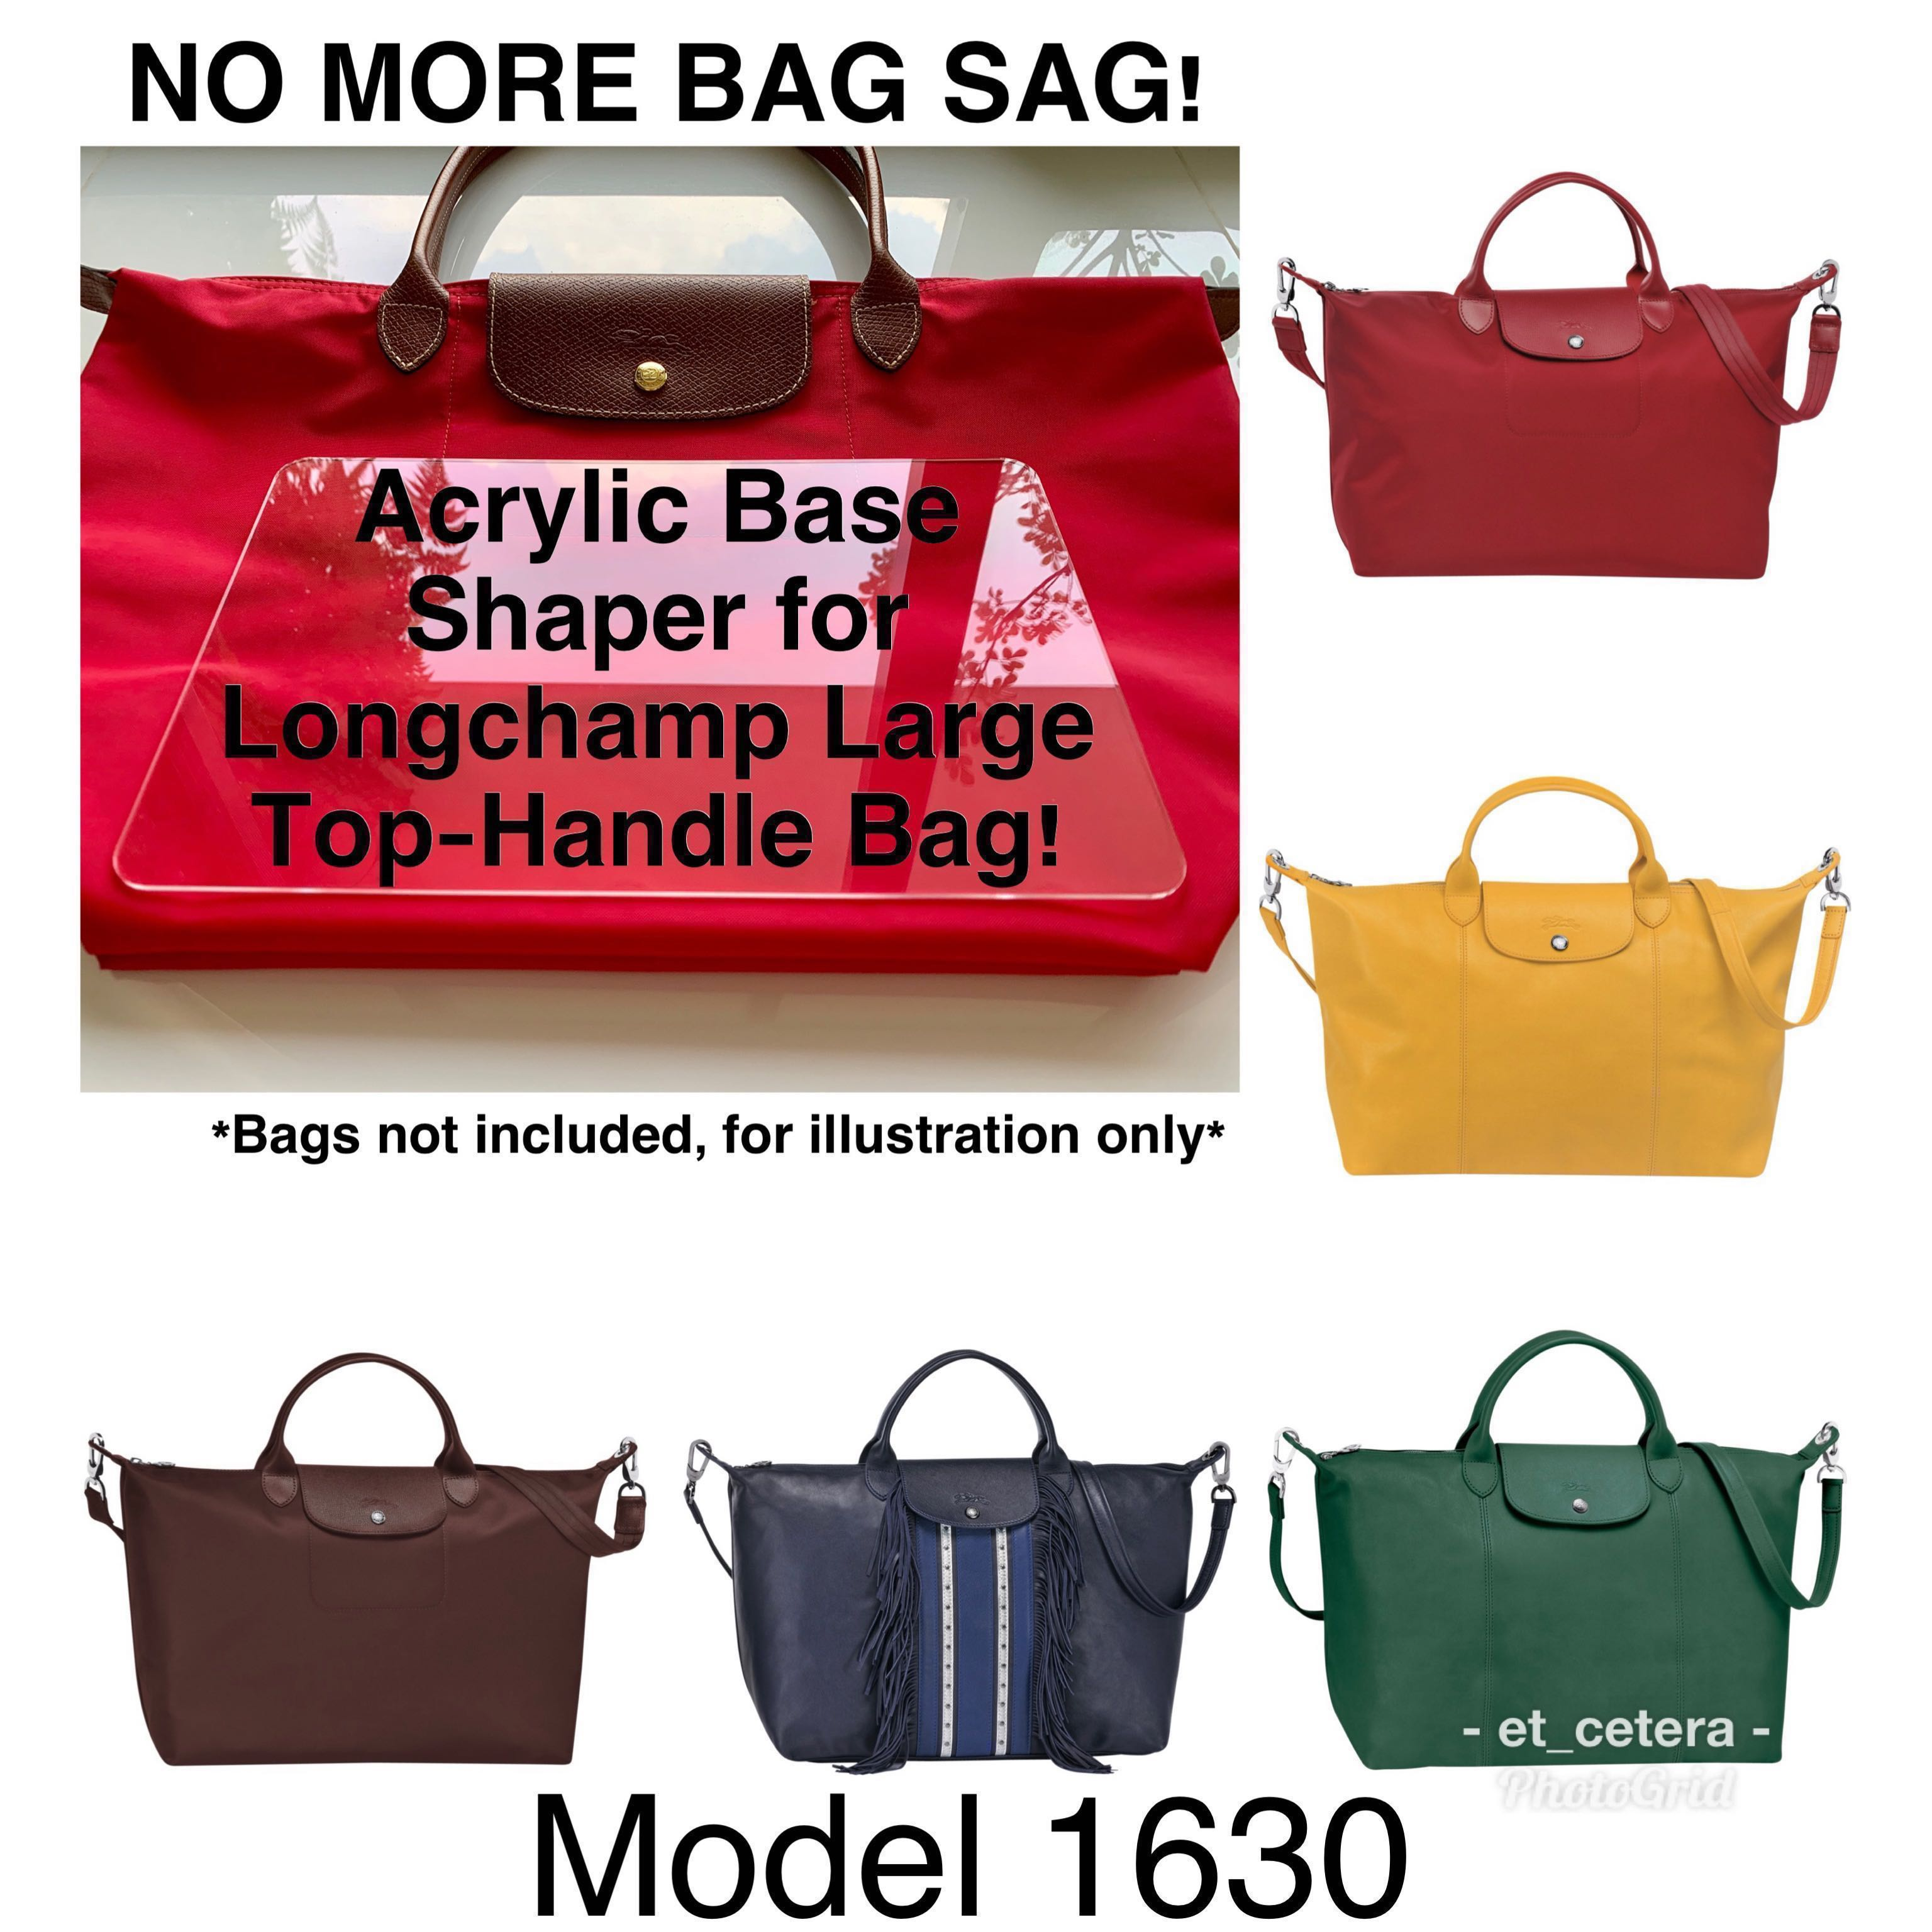 d2bf96bf581 BN Acrylic Base Shaper/Insert for Longchamp Le Pliage Neo Large Top-Handle  Bag (Model 1630), Women's Fashion, Bags & Wallets, Handbags on Carousell